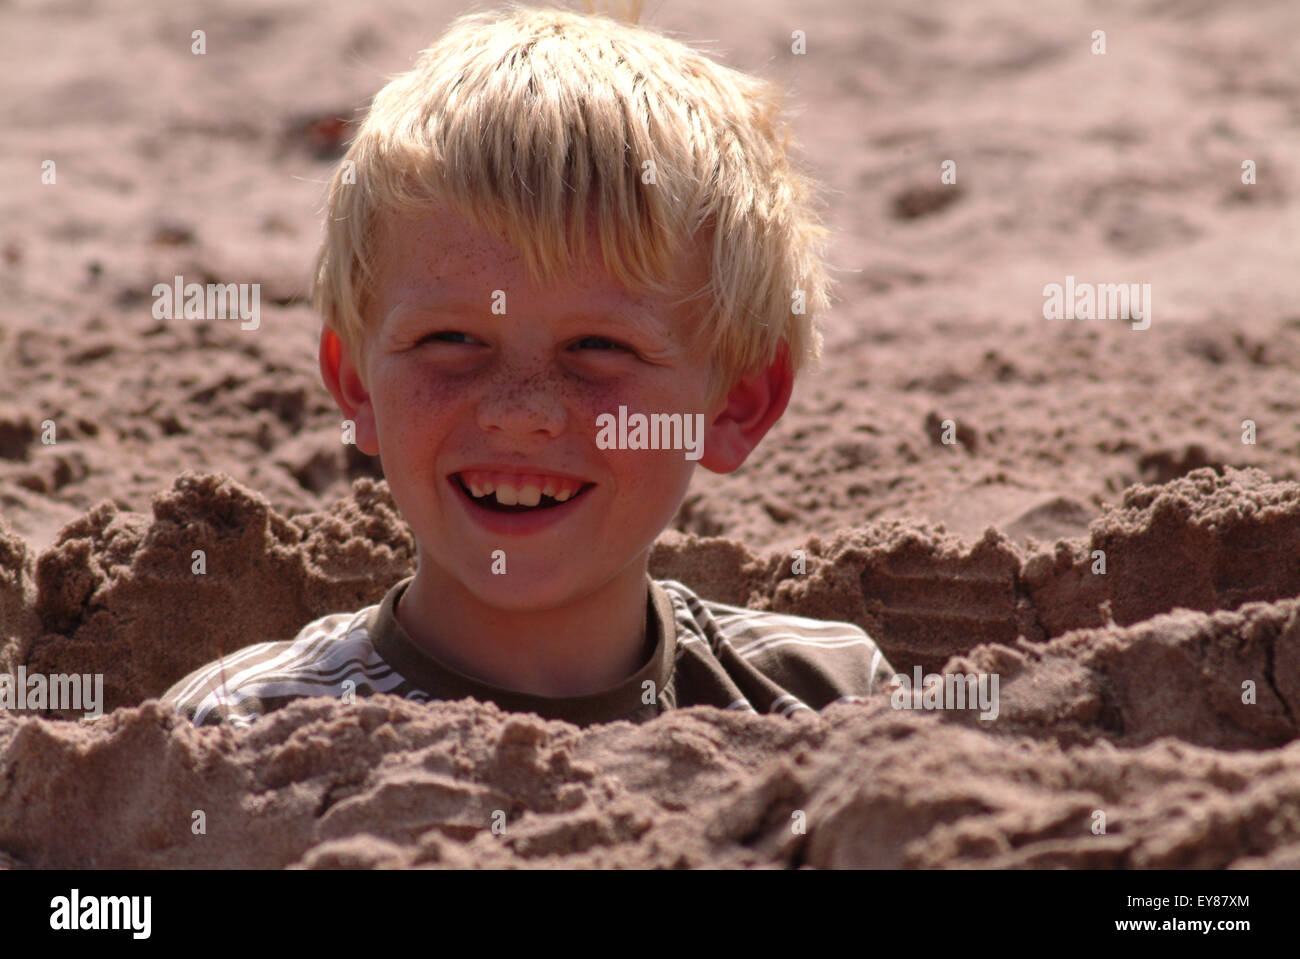 Blonde haired boy with freckles, smiling, laughing, sitting in a sand hole - Stock Image